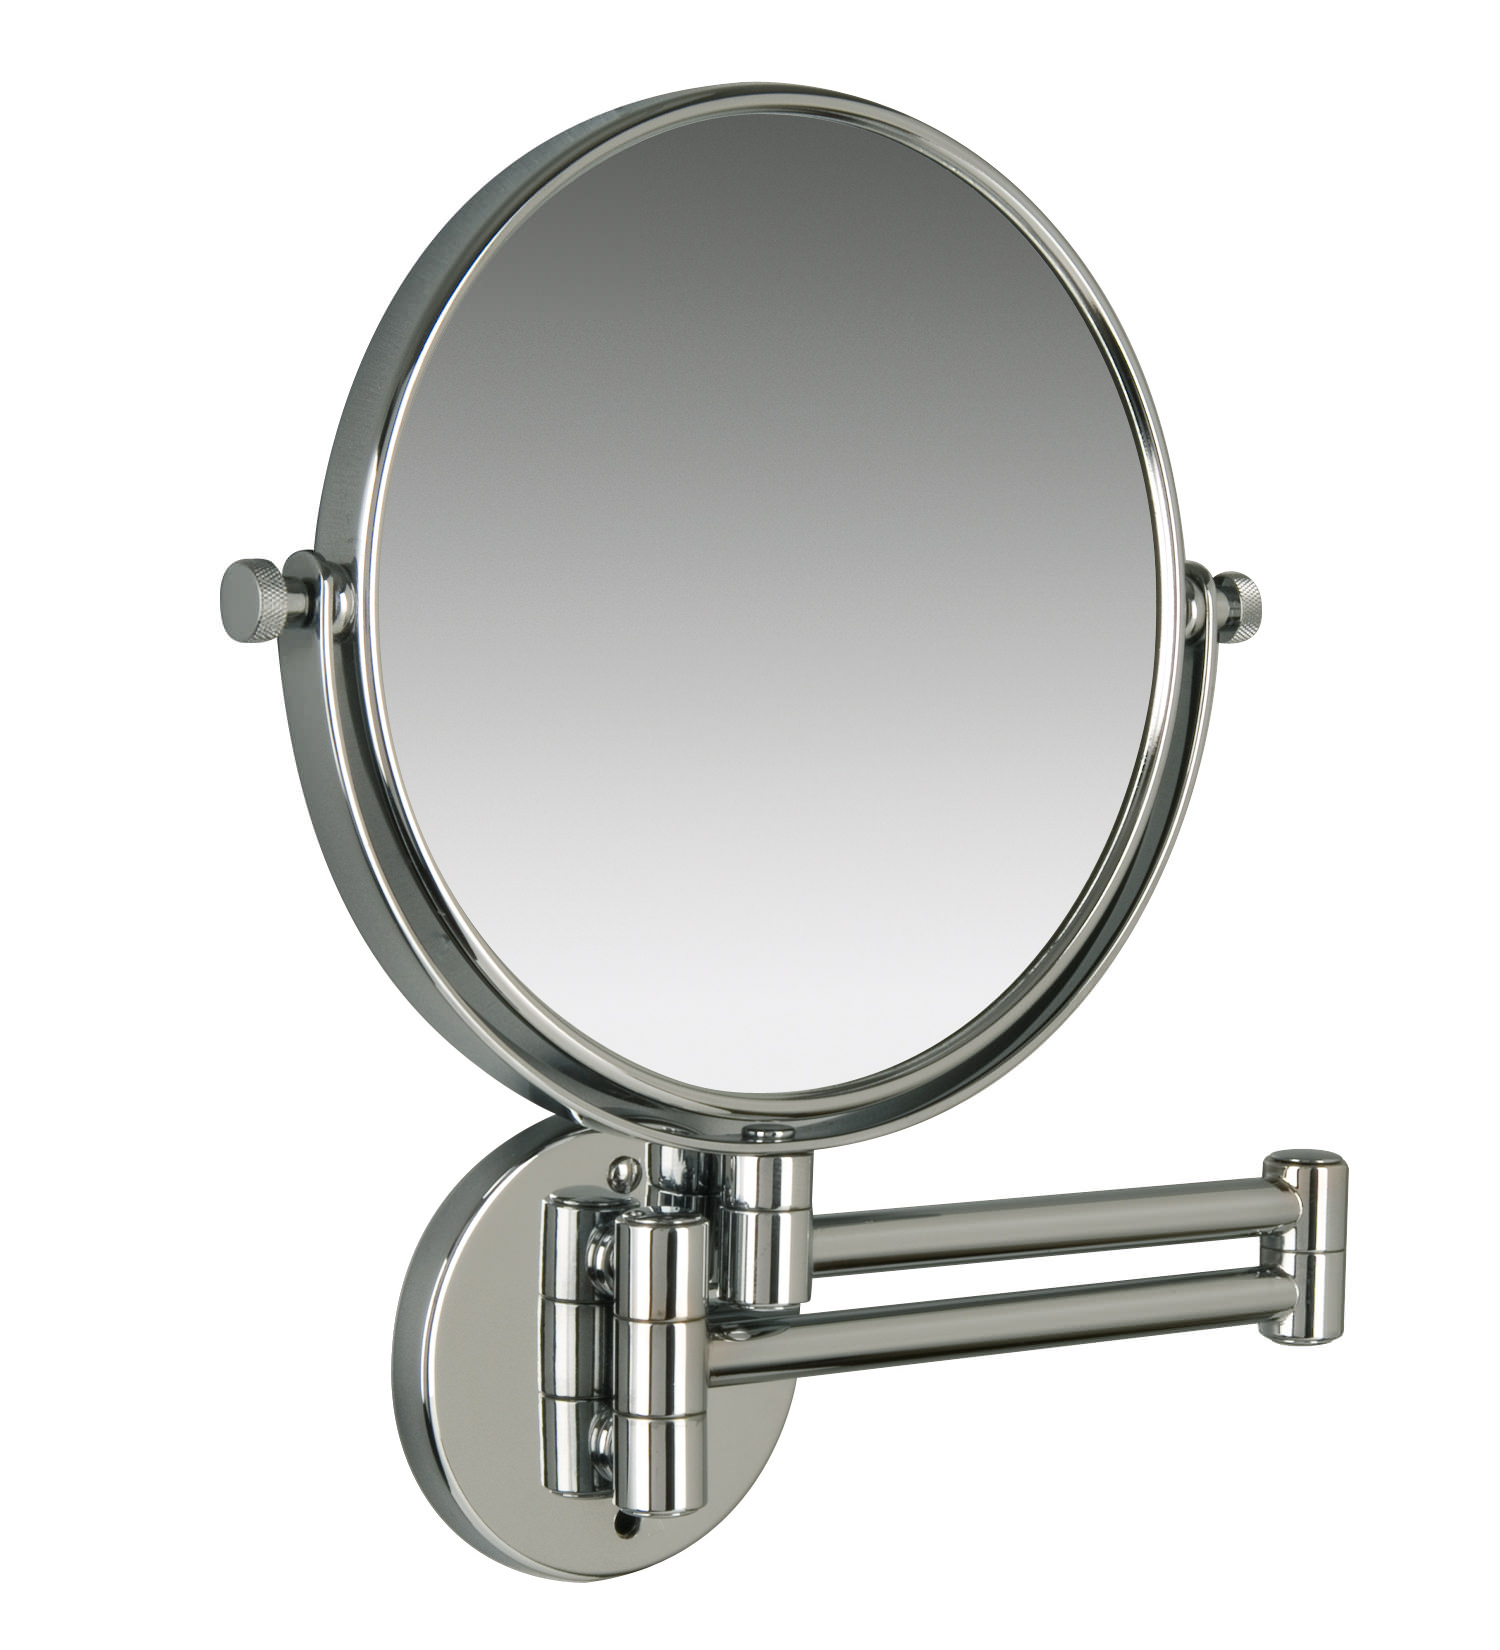 Qs Supplies Bathroom Mirrors Magnifying Miller Classic Modern Mm